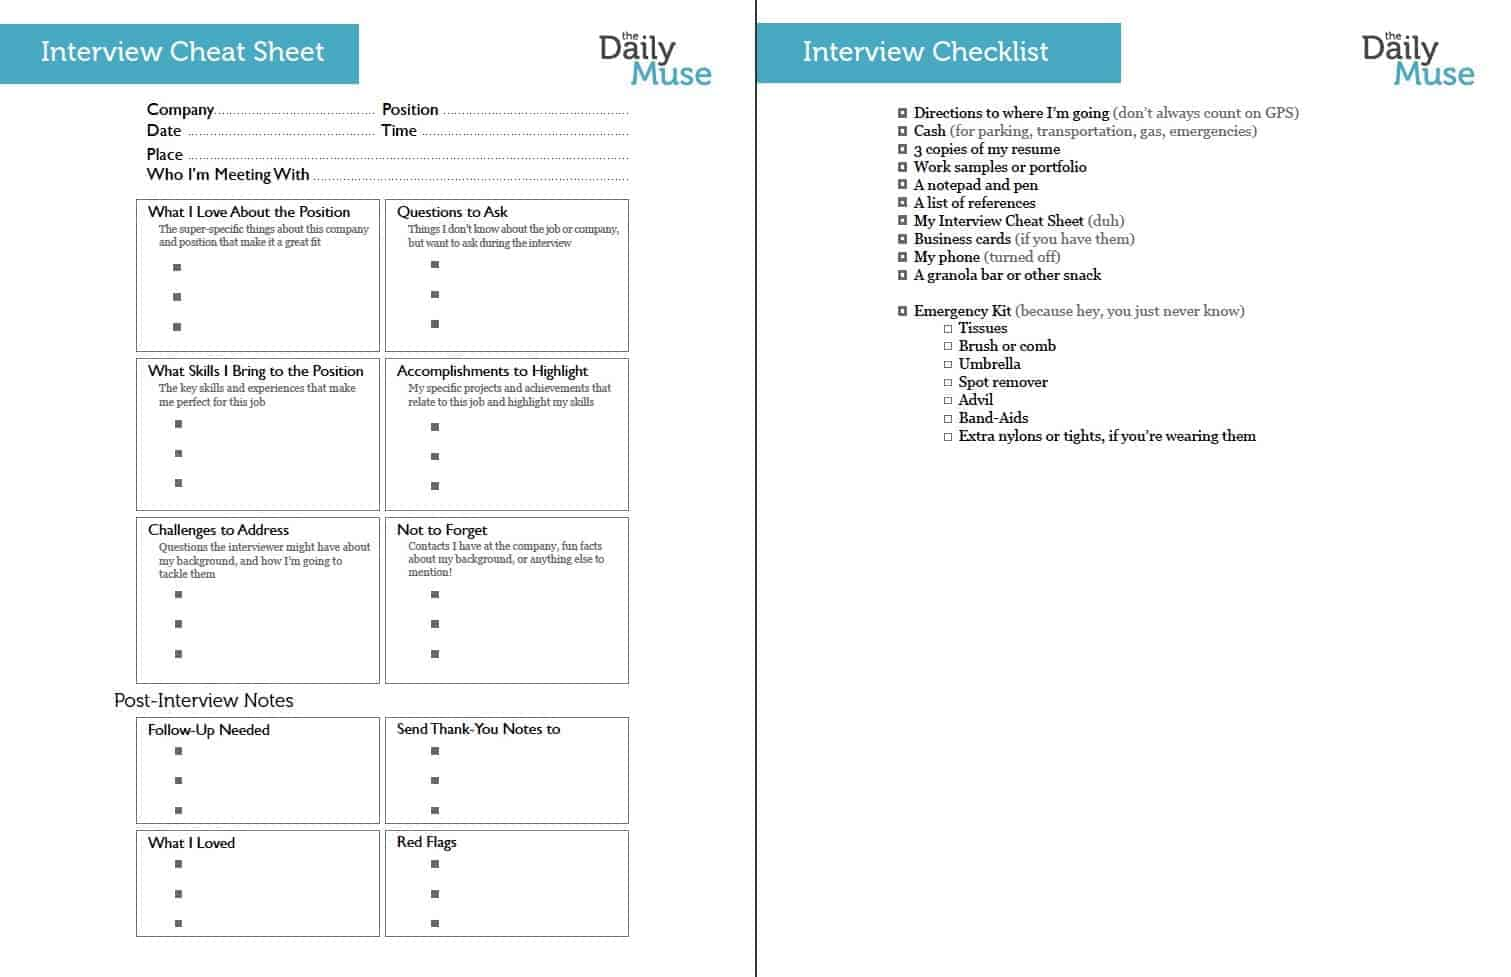 Merveilleux Daily Muse Interview Checklist